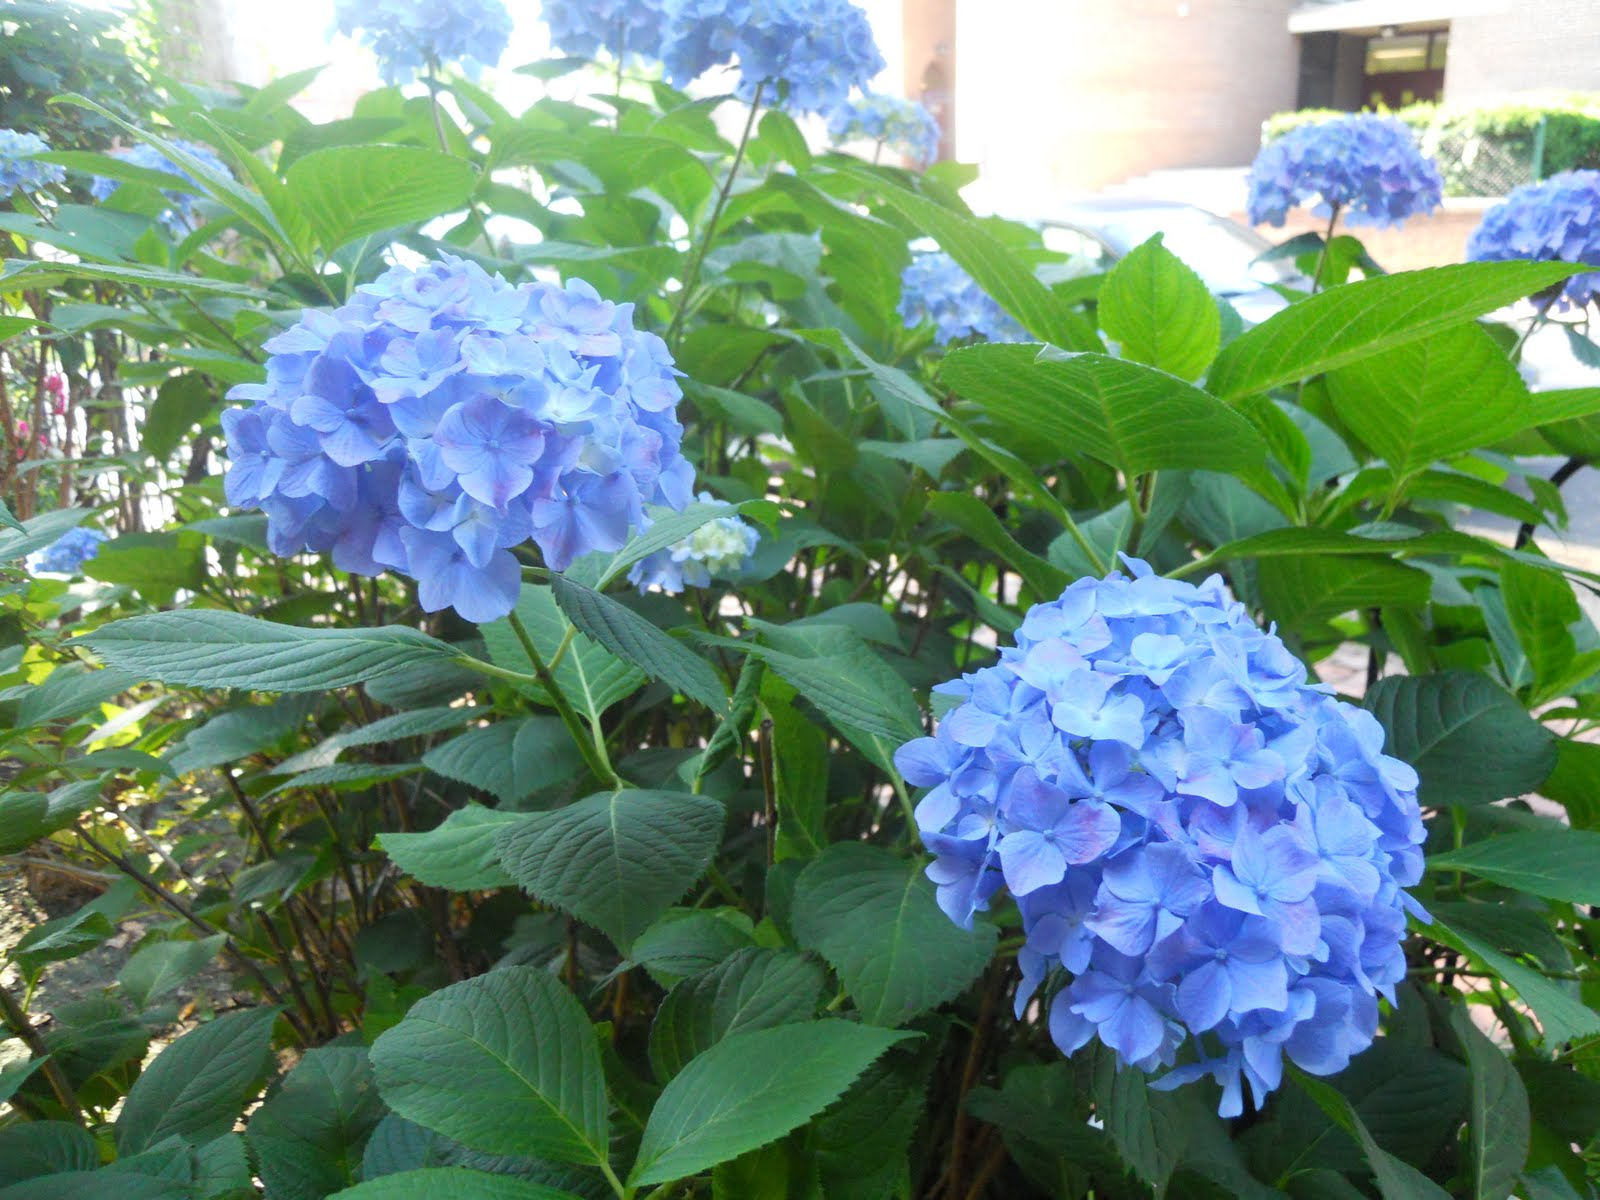 Isn T The Color Of Her Flowers What Any Gardener Dreams Are Perfect Shade Blue And Not A Hint Pink Or Purple